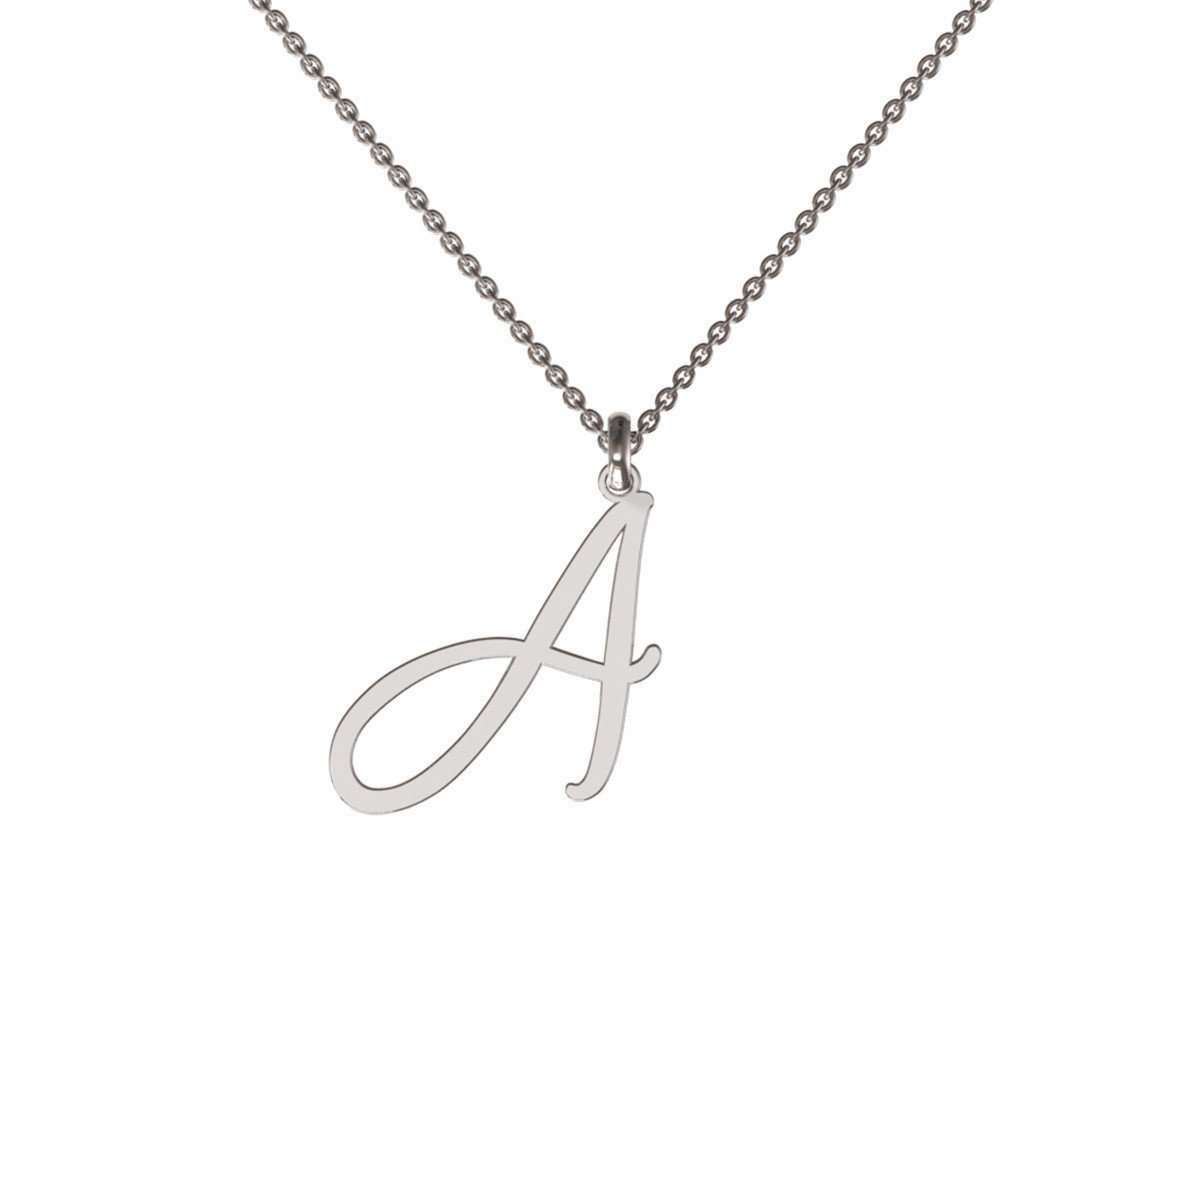 Flowing Initial Necklace-me.mi-JewelStreet US